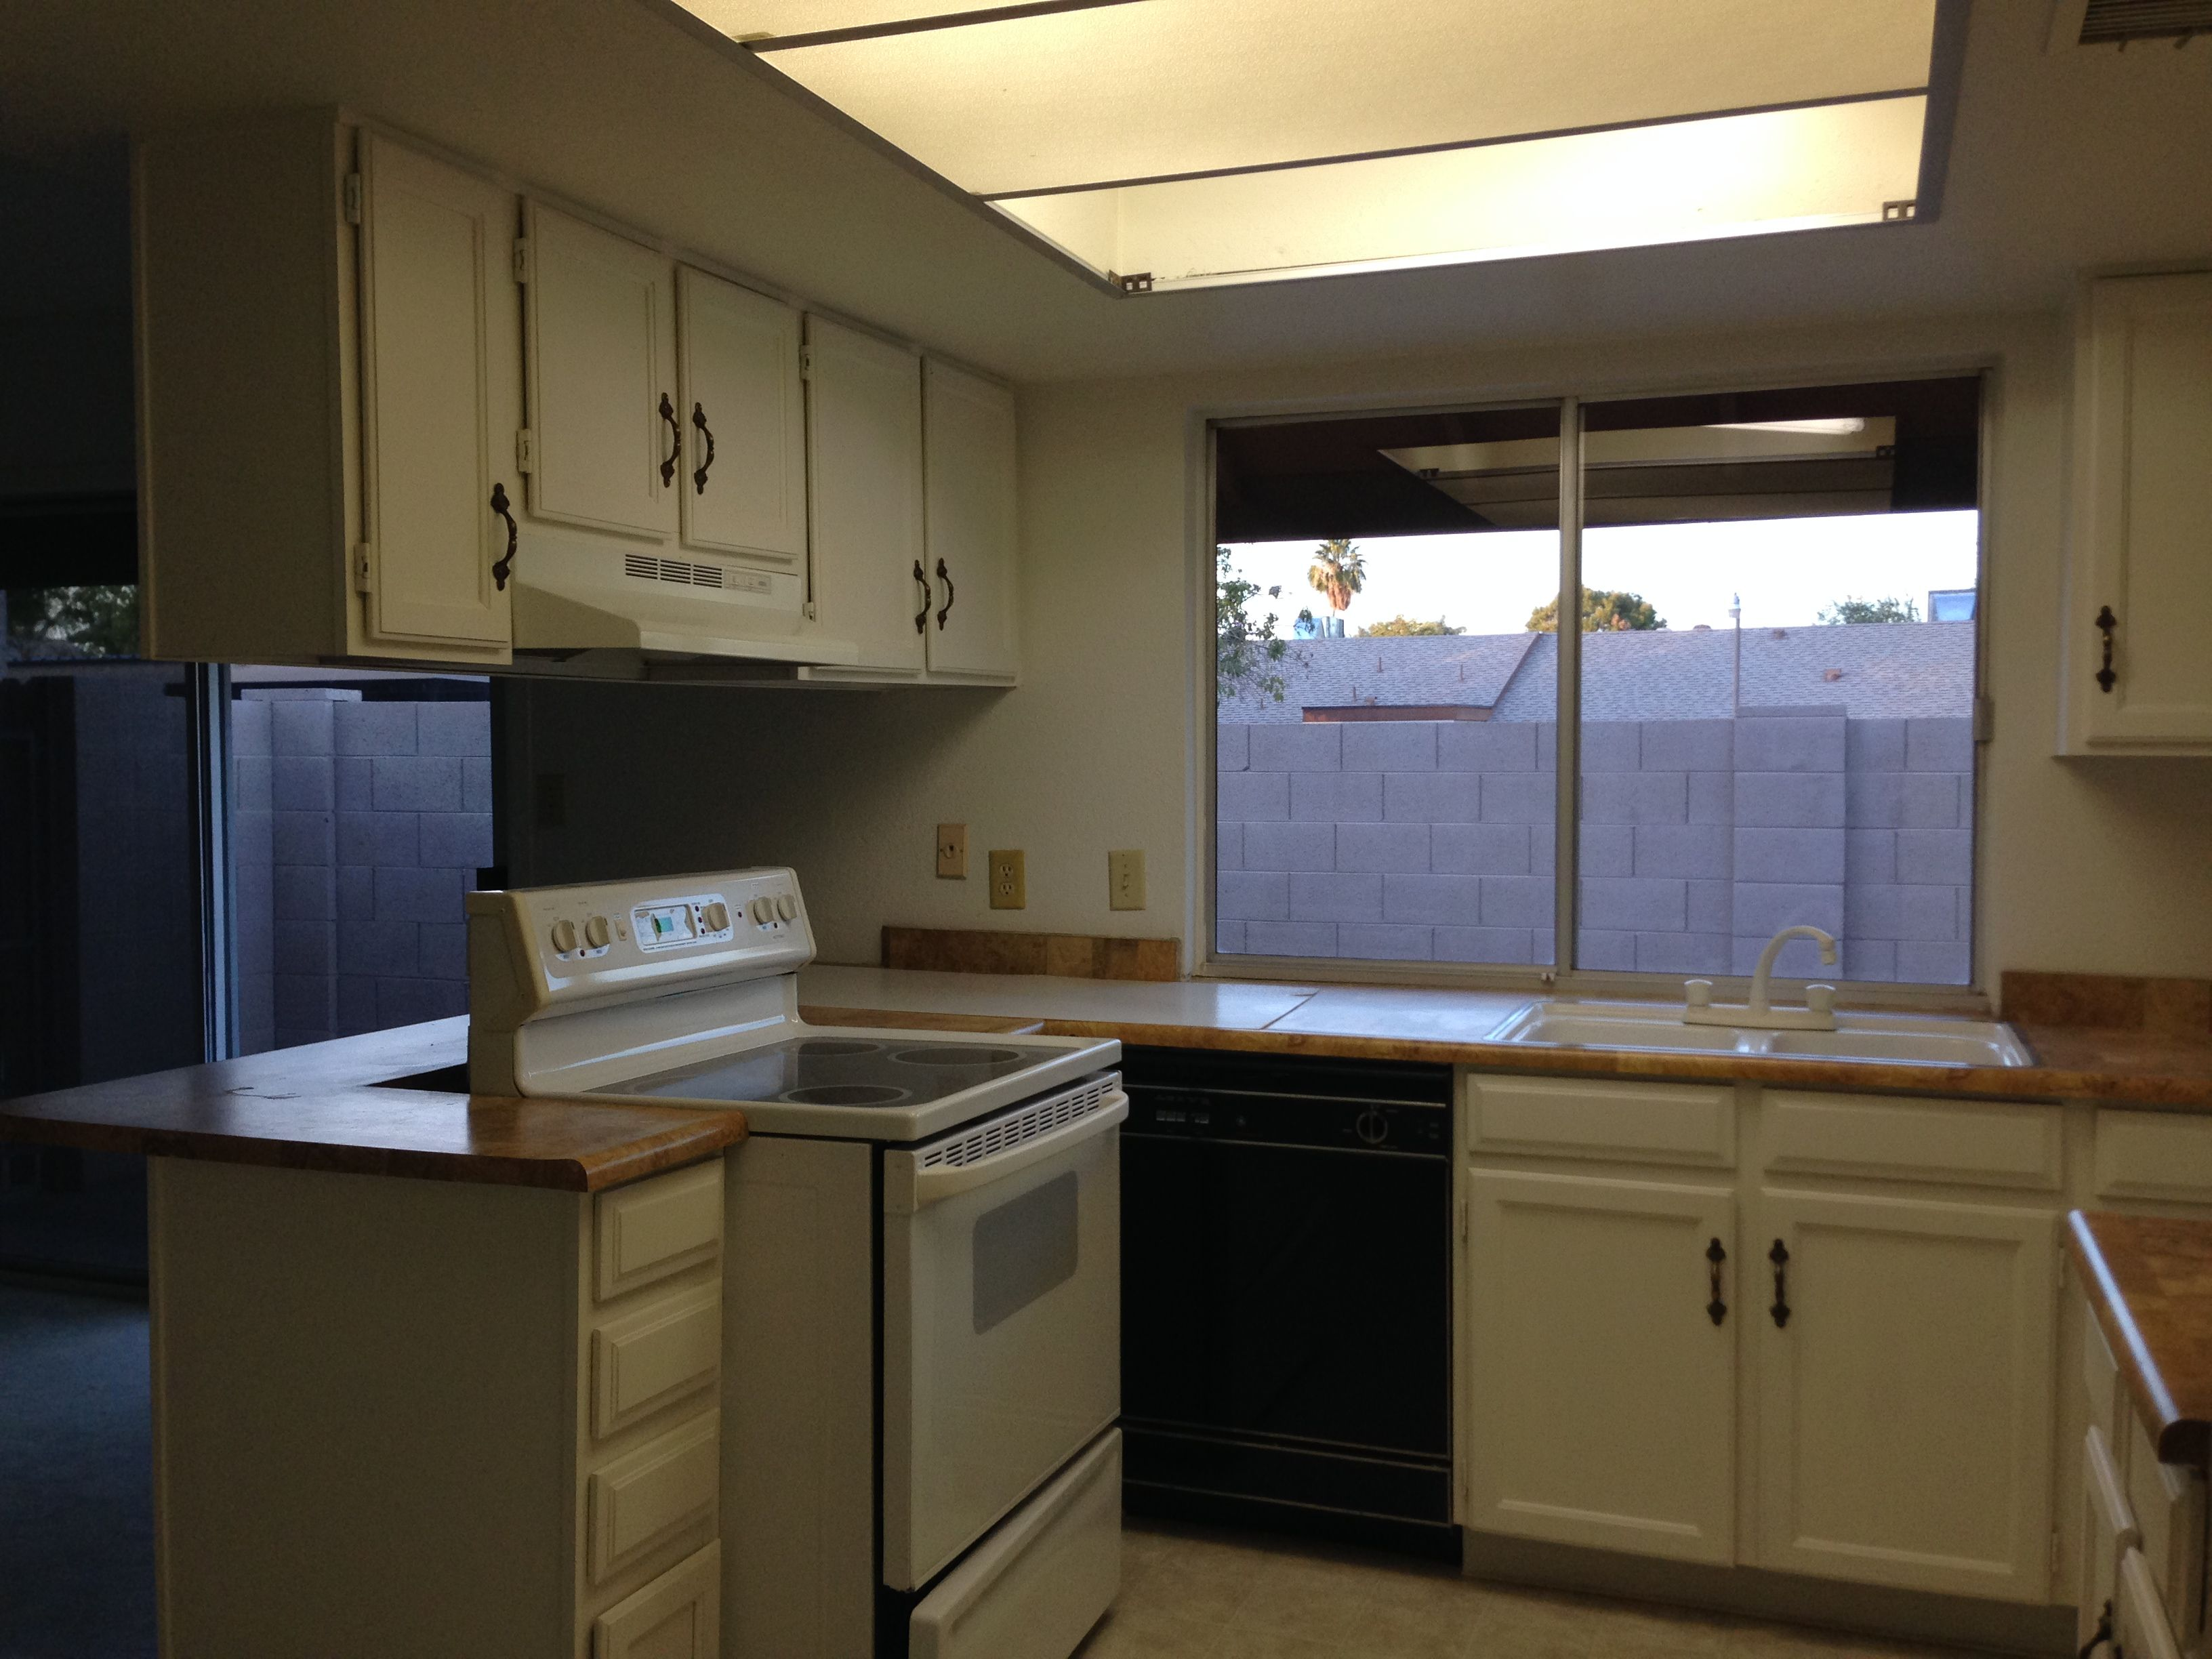 Kitchen before 7 foot ceiling with 30 1970s cabinets 4 x 6 fluorescent light w x 48h oversized window